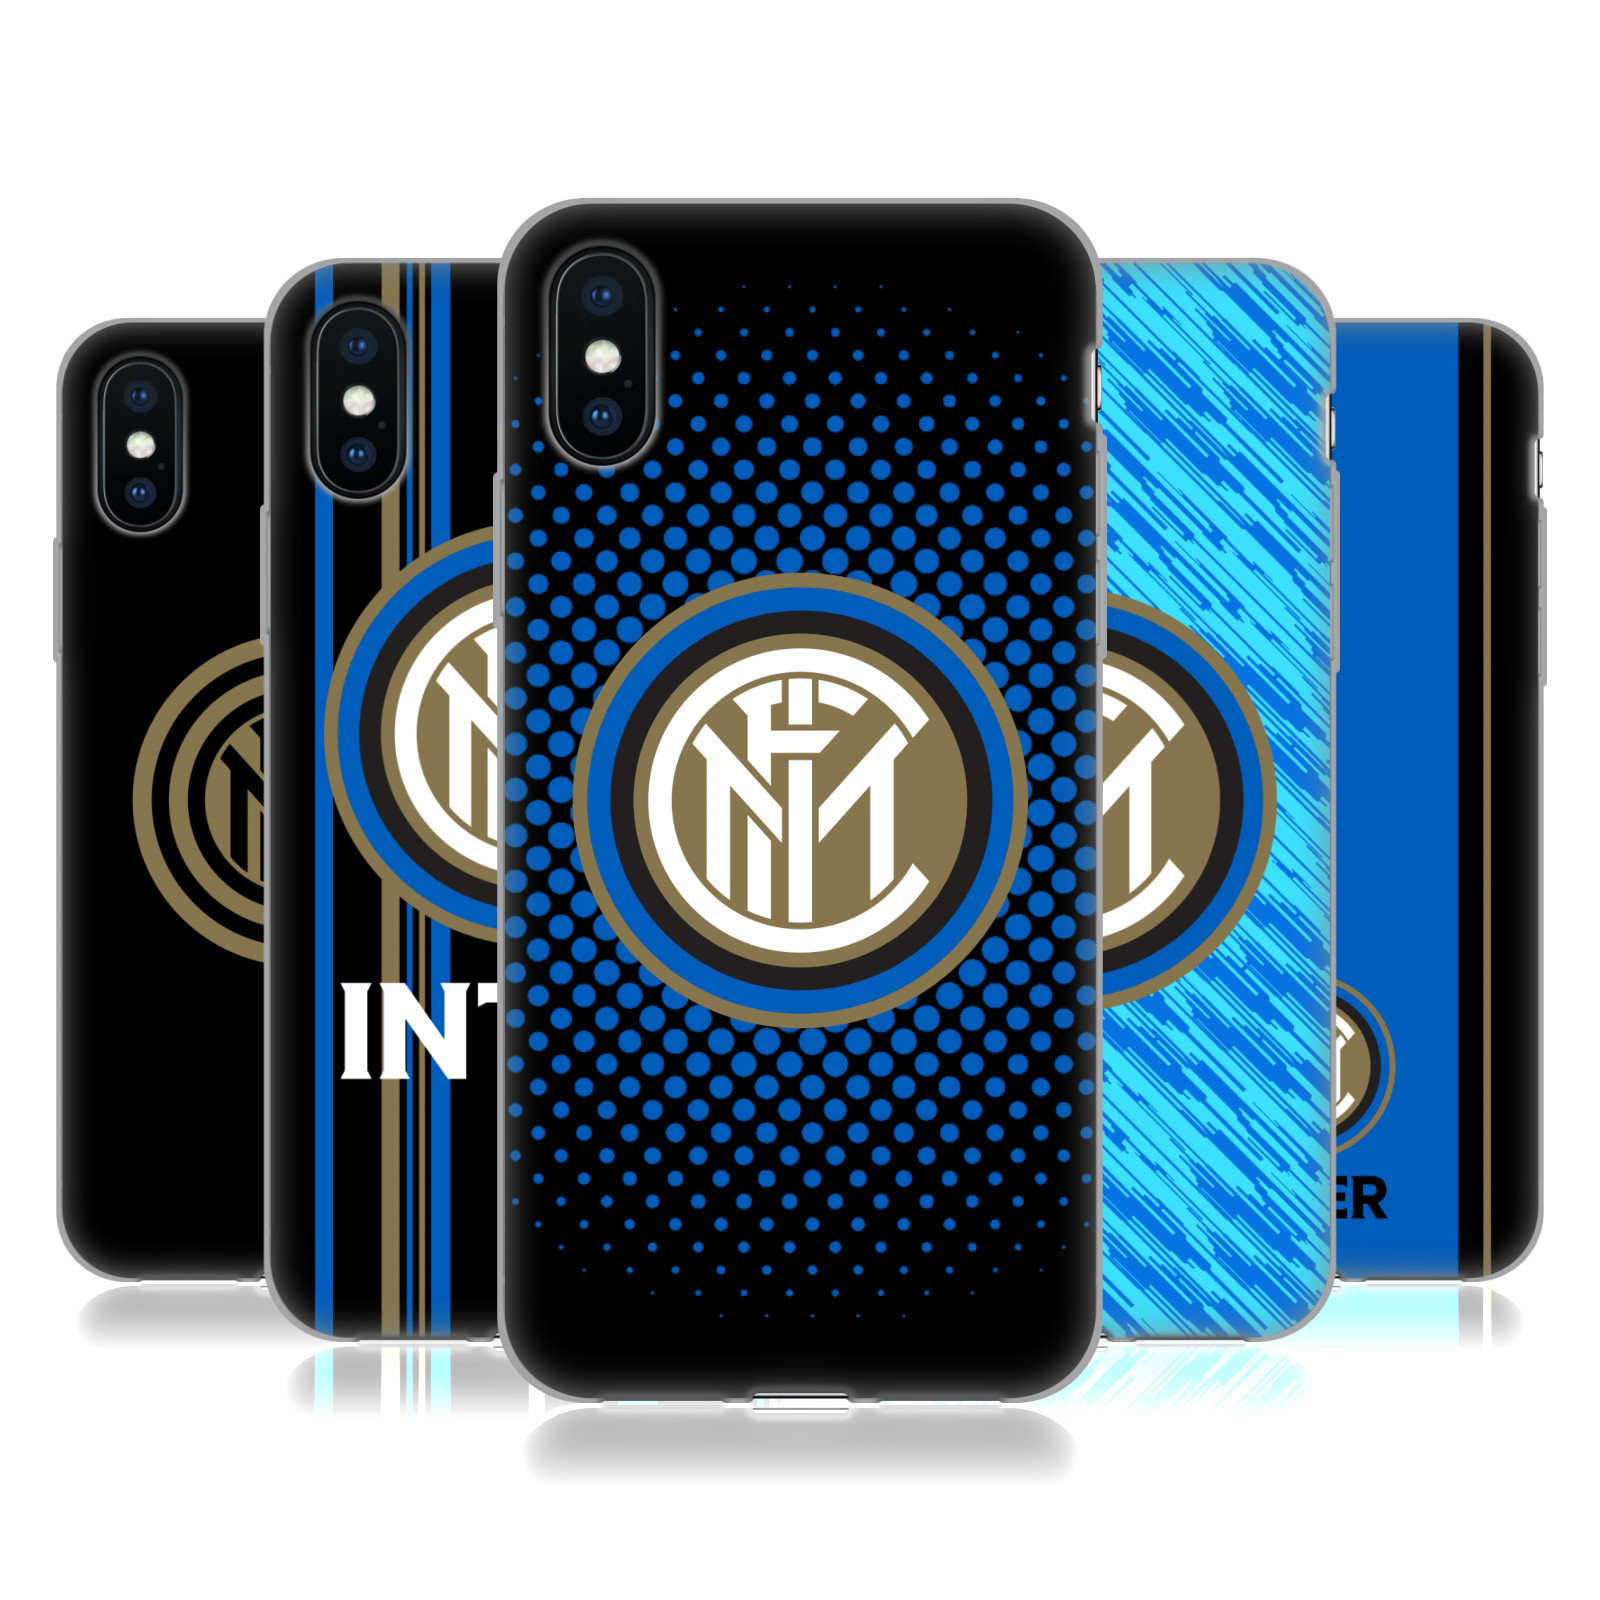 Inter Milan <!--translate-lineup-->2018/19 Crest<!--translate-lineup-->